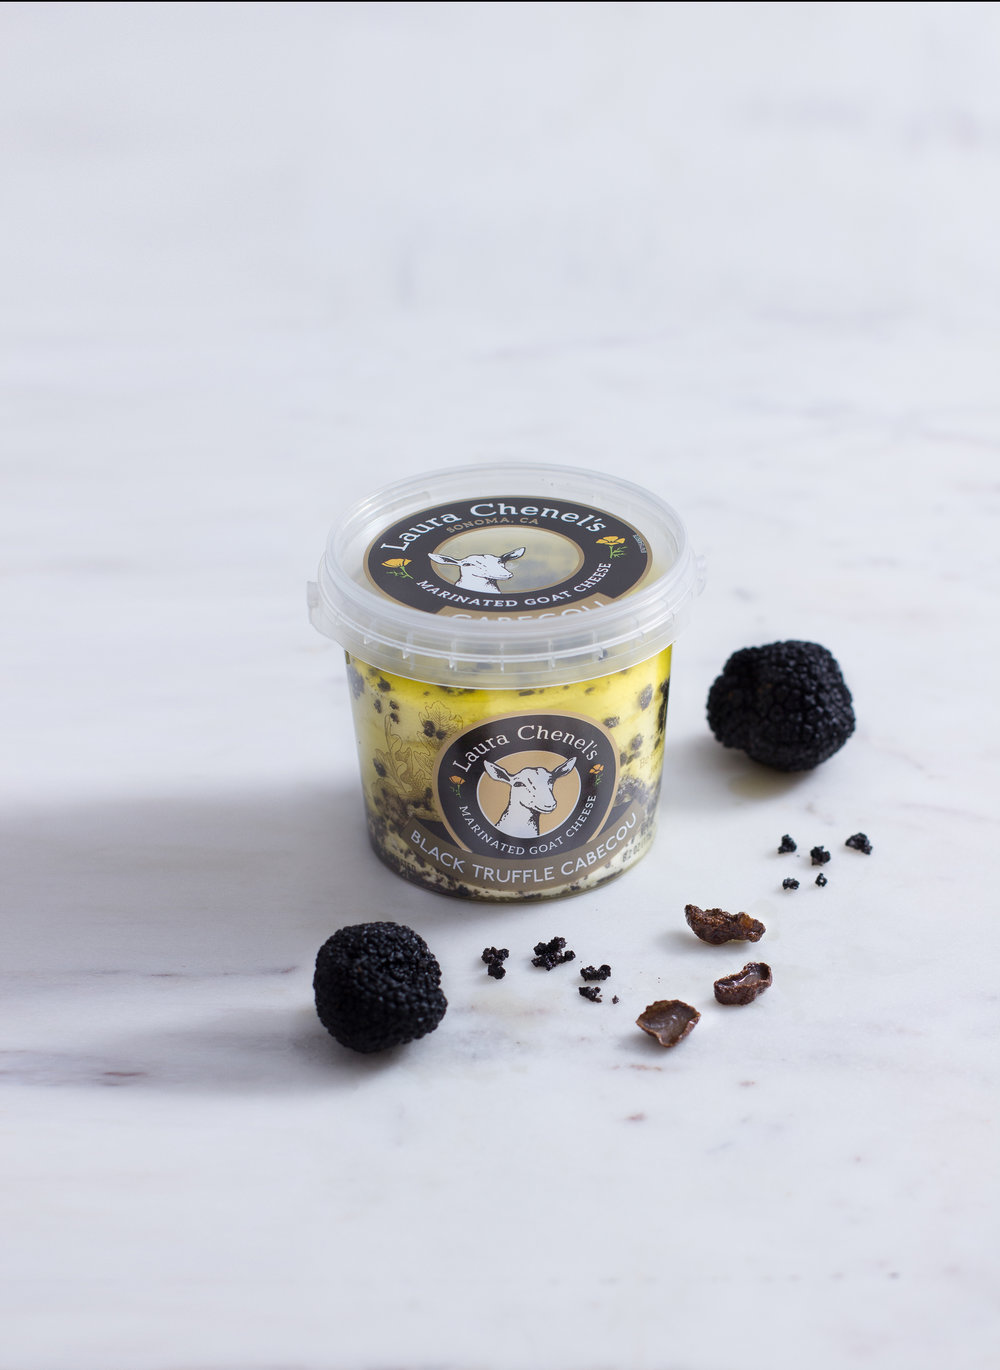 Try our new Black Truffle Cabecou!